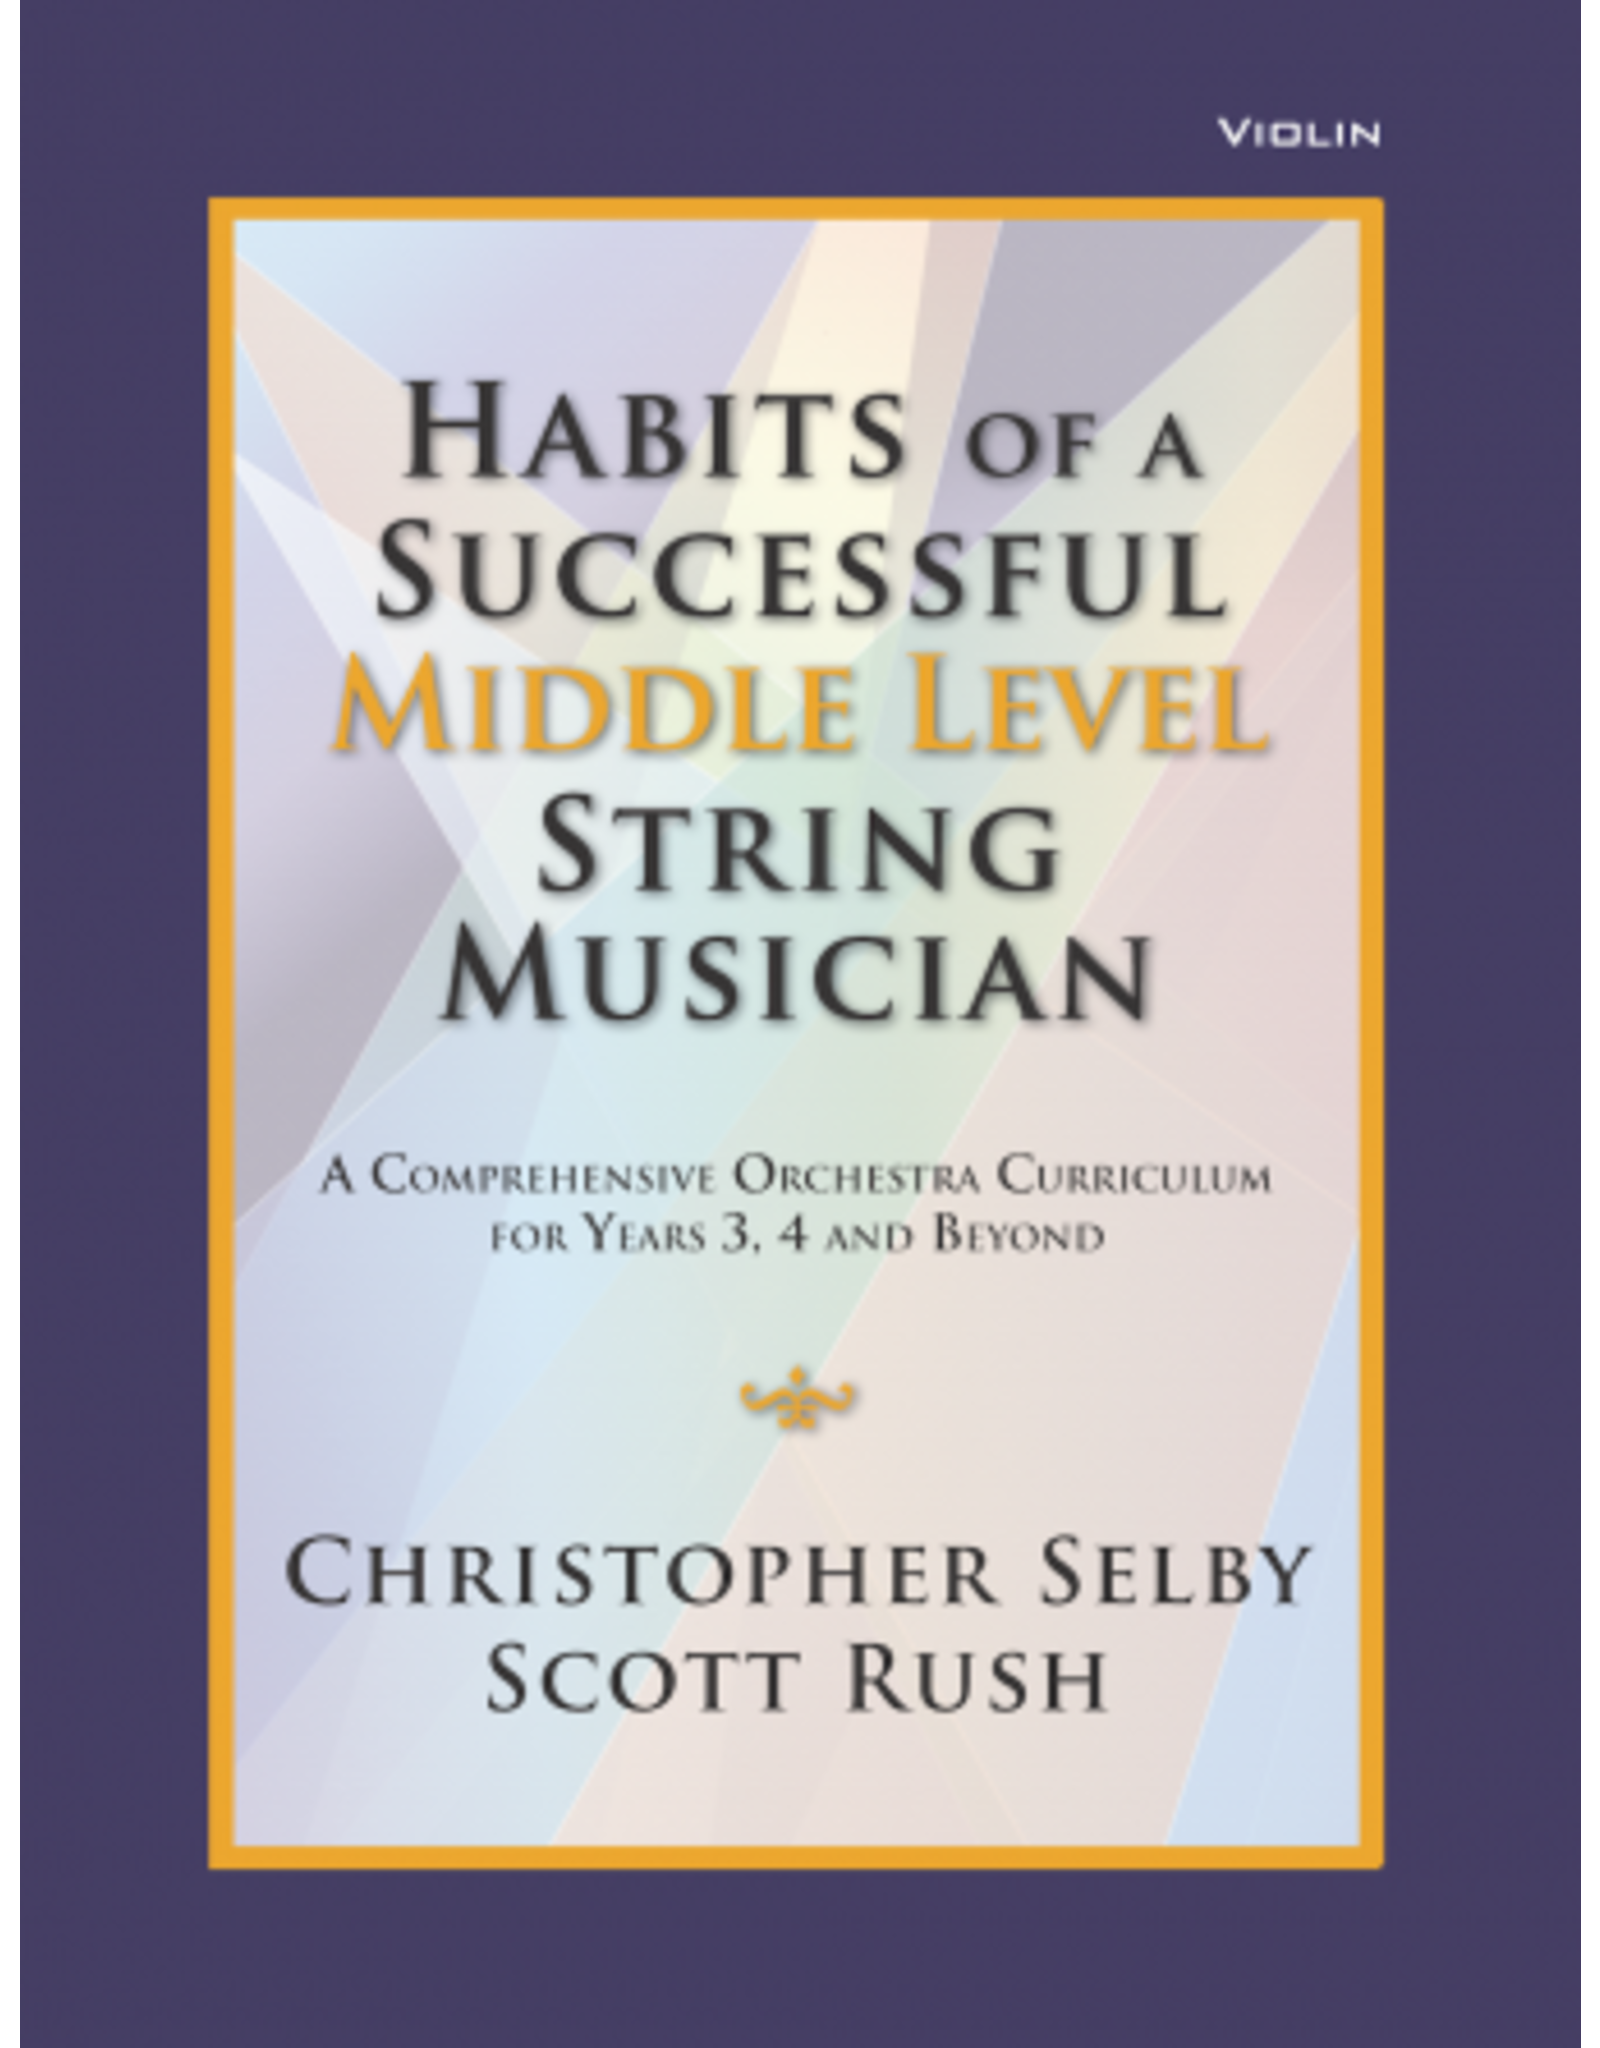 GIA Publications Habits of a Successful Middle Level String Musician - Violin